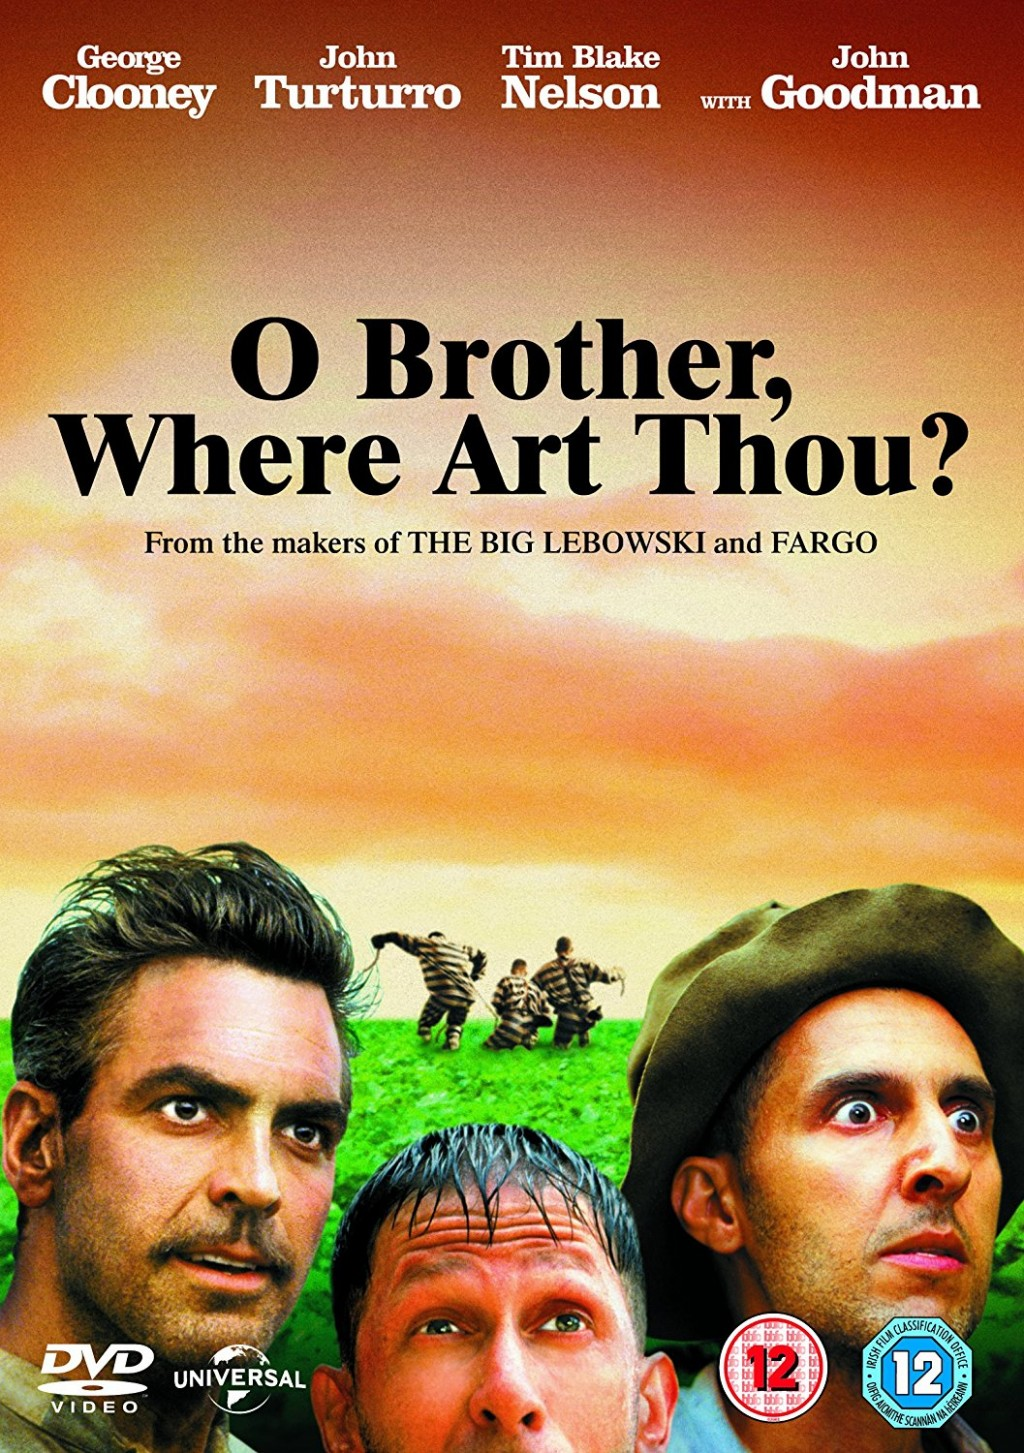 008 O Brother Where Art Thou Essay Huber Striking And The Odyssey Comparison Vs Compared To Large